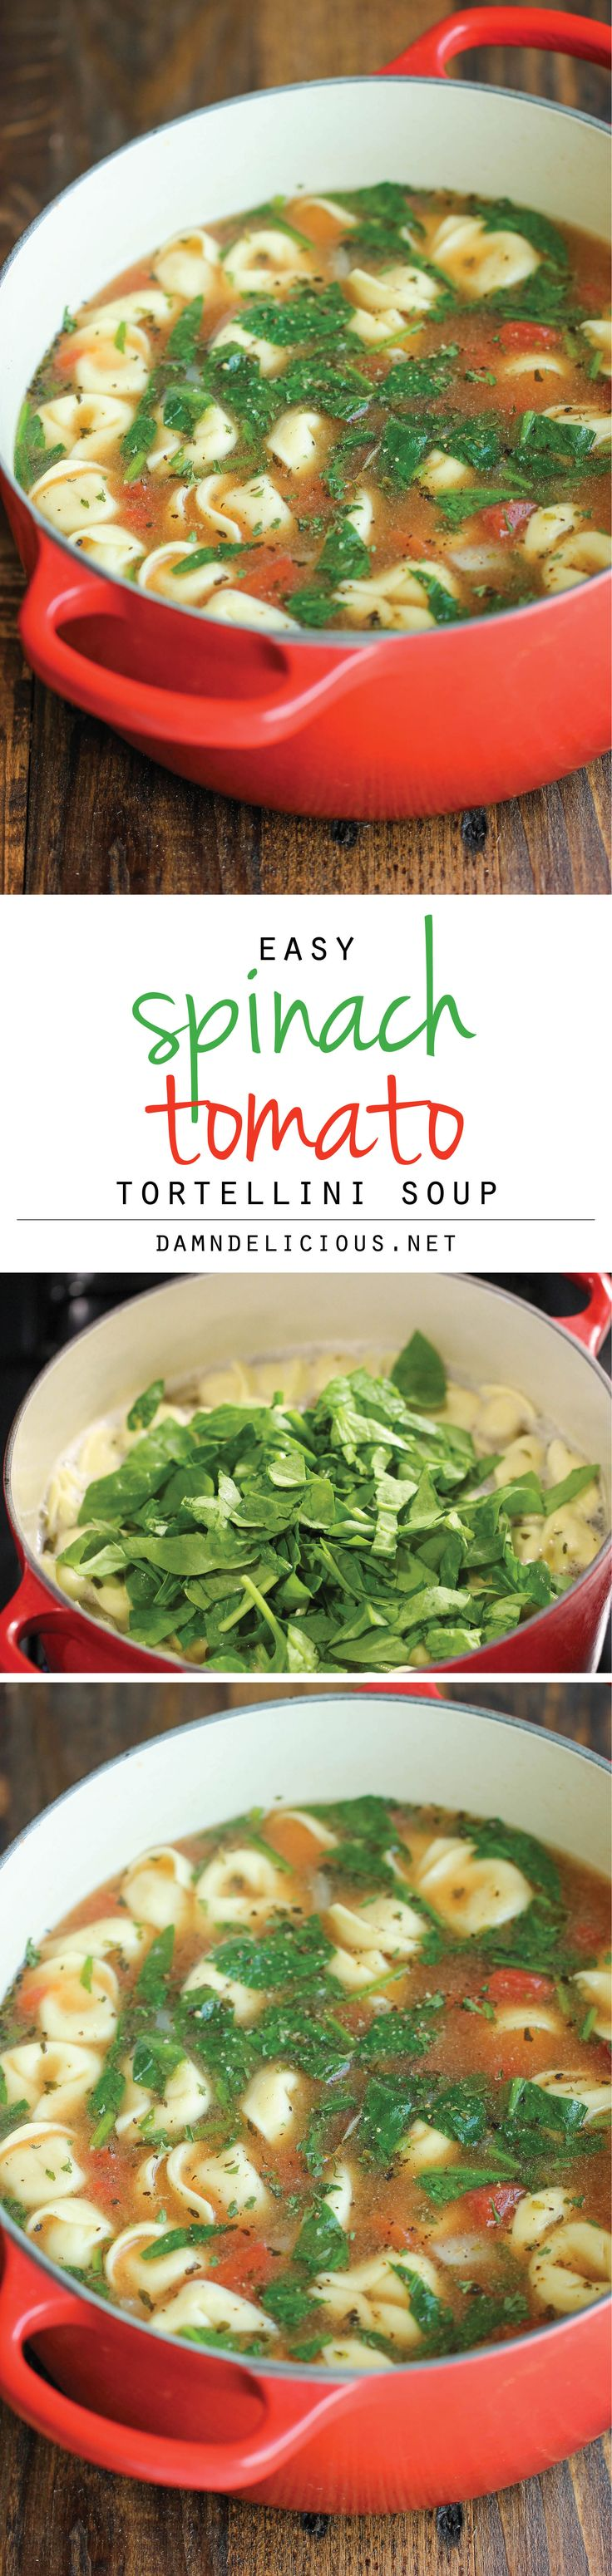 nike structure triax 13 gtx Spinach Tomato Tortellini Soup   The easiest  most comforting and hearty soup  All you need is 5 minutes prep  SO EASY